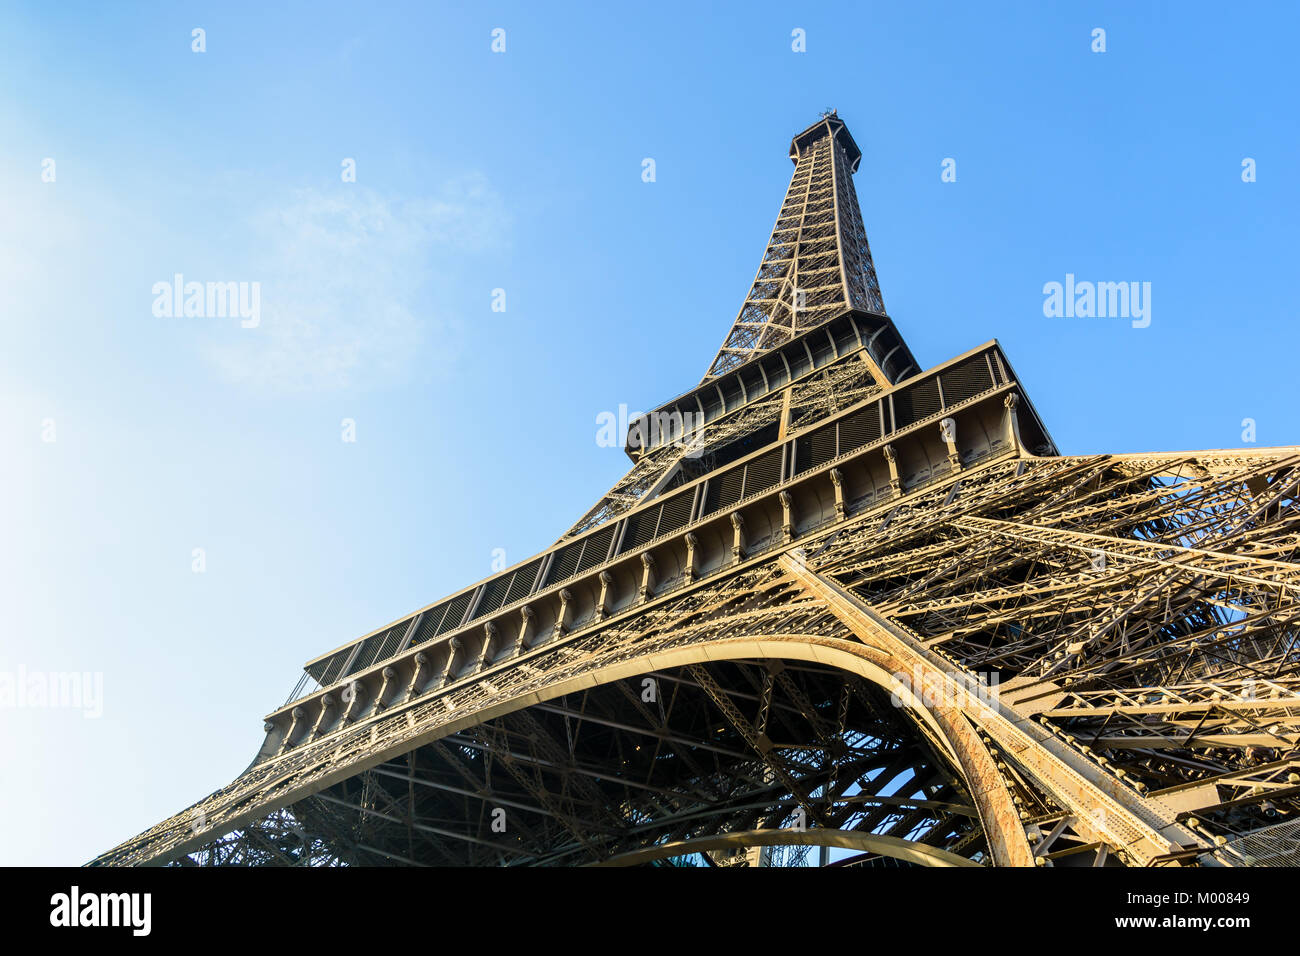 Dynamic view from below of the Eiffel Tower against blue sky. - Stock Image